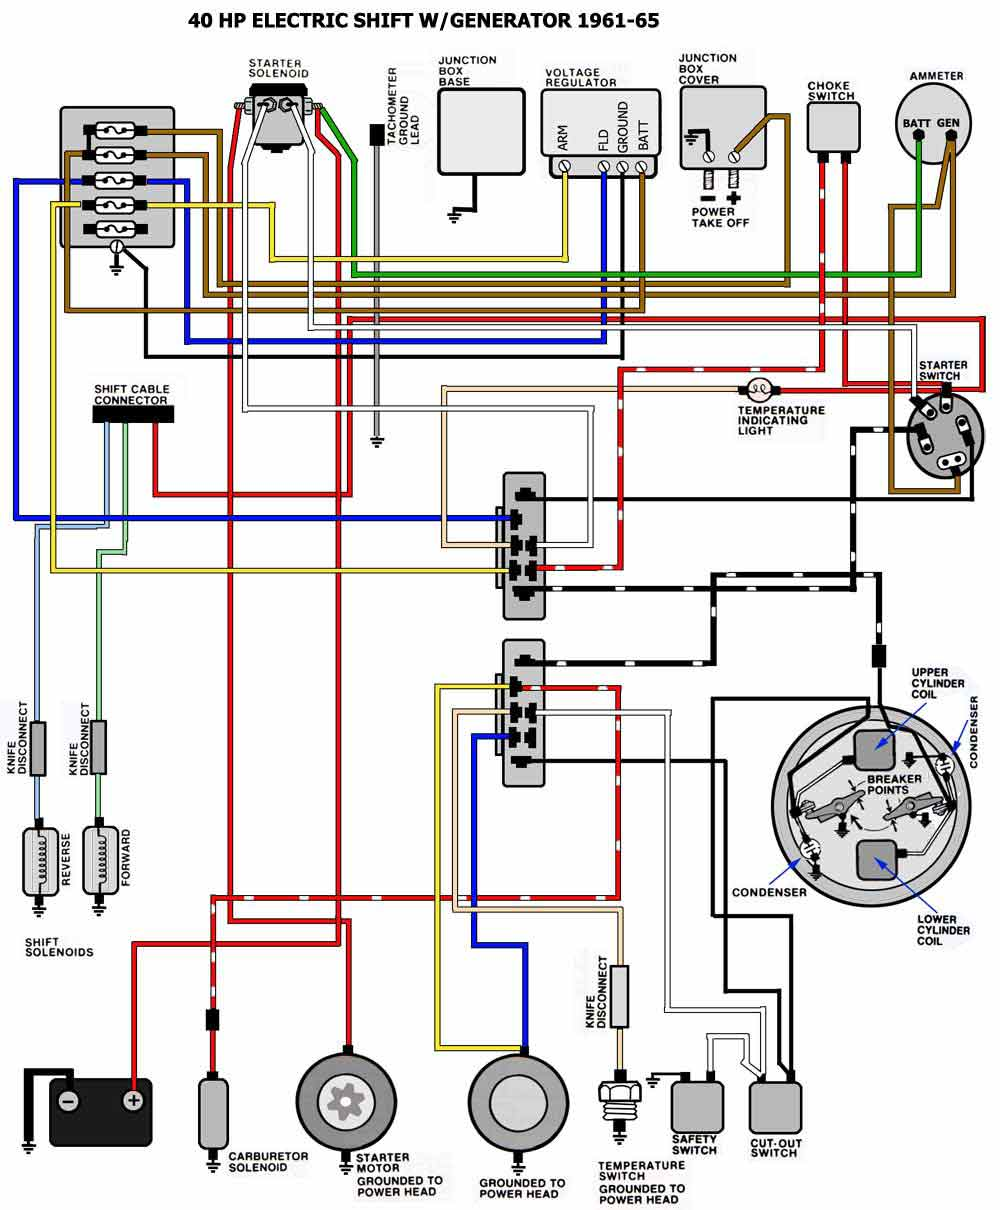 DIAGRAM] 40 Hp FULL Version HD Quality Wiring Diagrams -  IDEAARTGRAFIK.CHEFSCUISINIERSAIN.FRideaartgrafik chefscuisiniersain fr